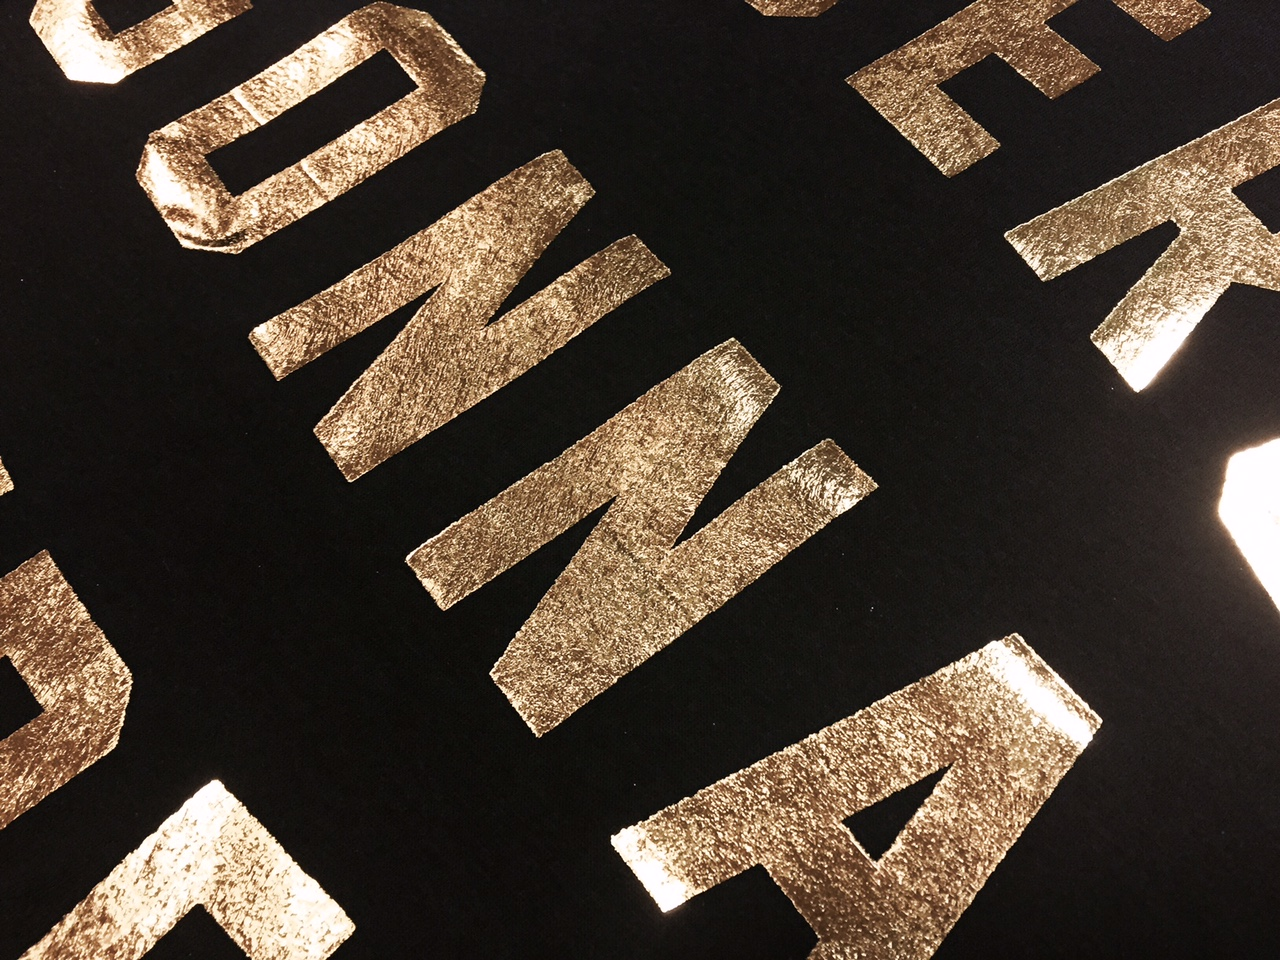 Black t shirt with gold design - Gold Foil On A Black T Shirt Marshall Atkinson